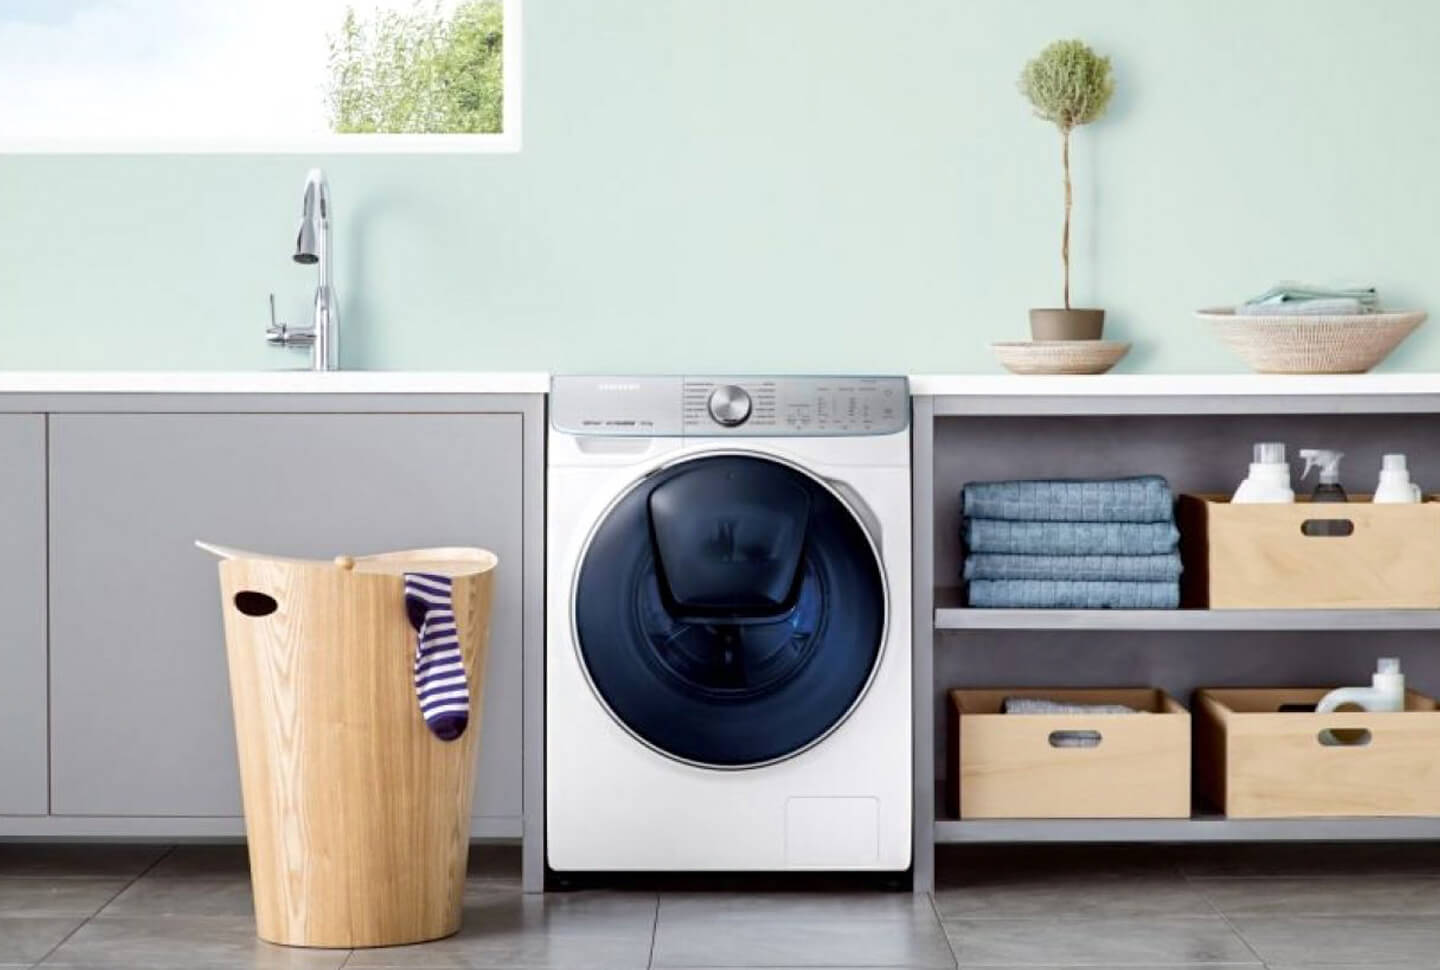 Moreover, the WW8800M is Samsungs first IoT ready laundry machine,  boasting an AI-powered laundry assistant called Q-rator.